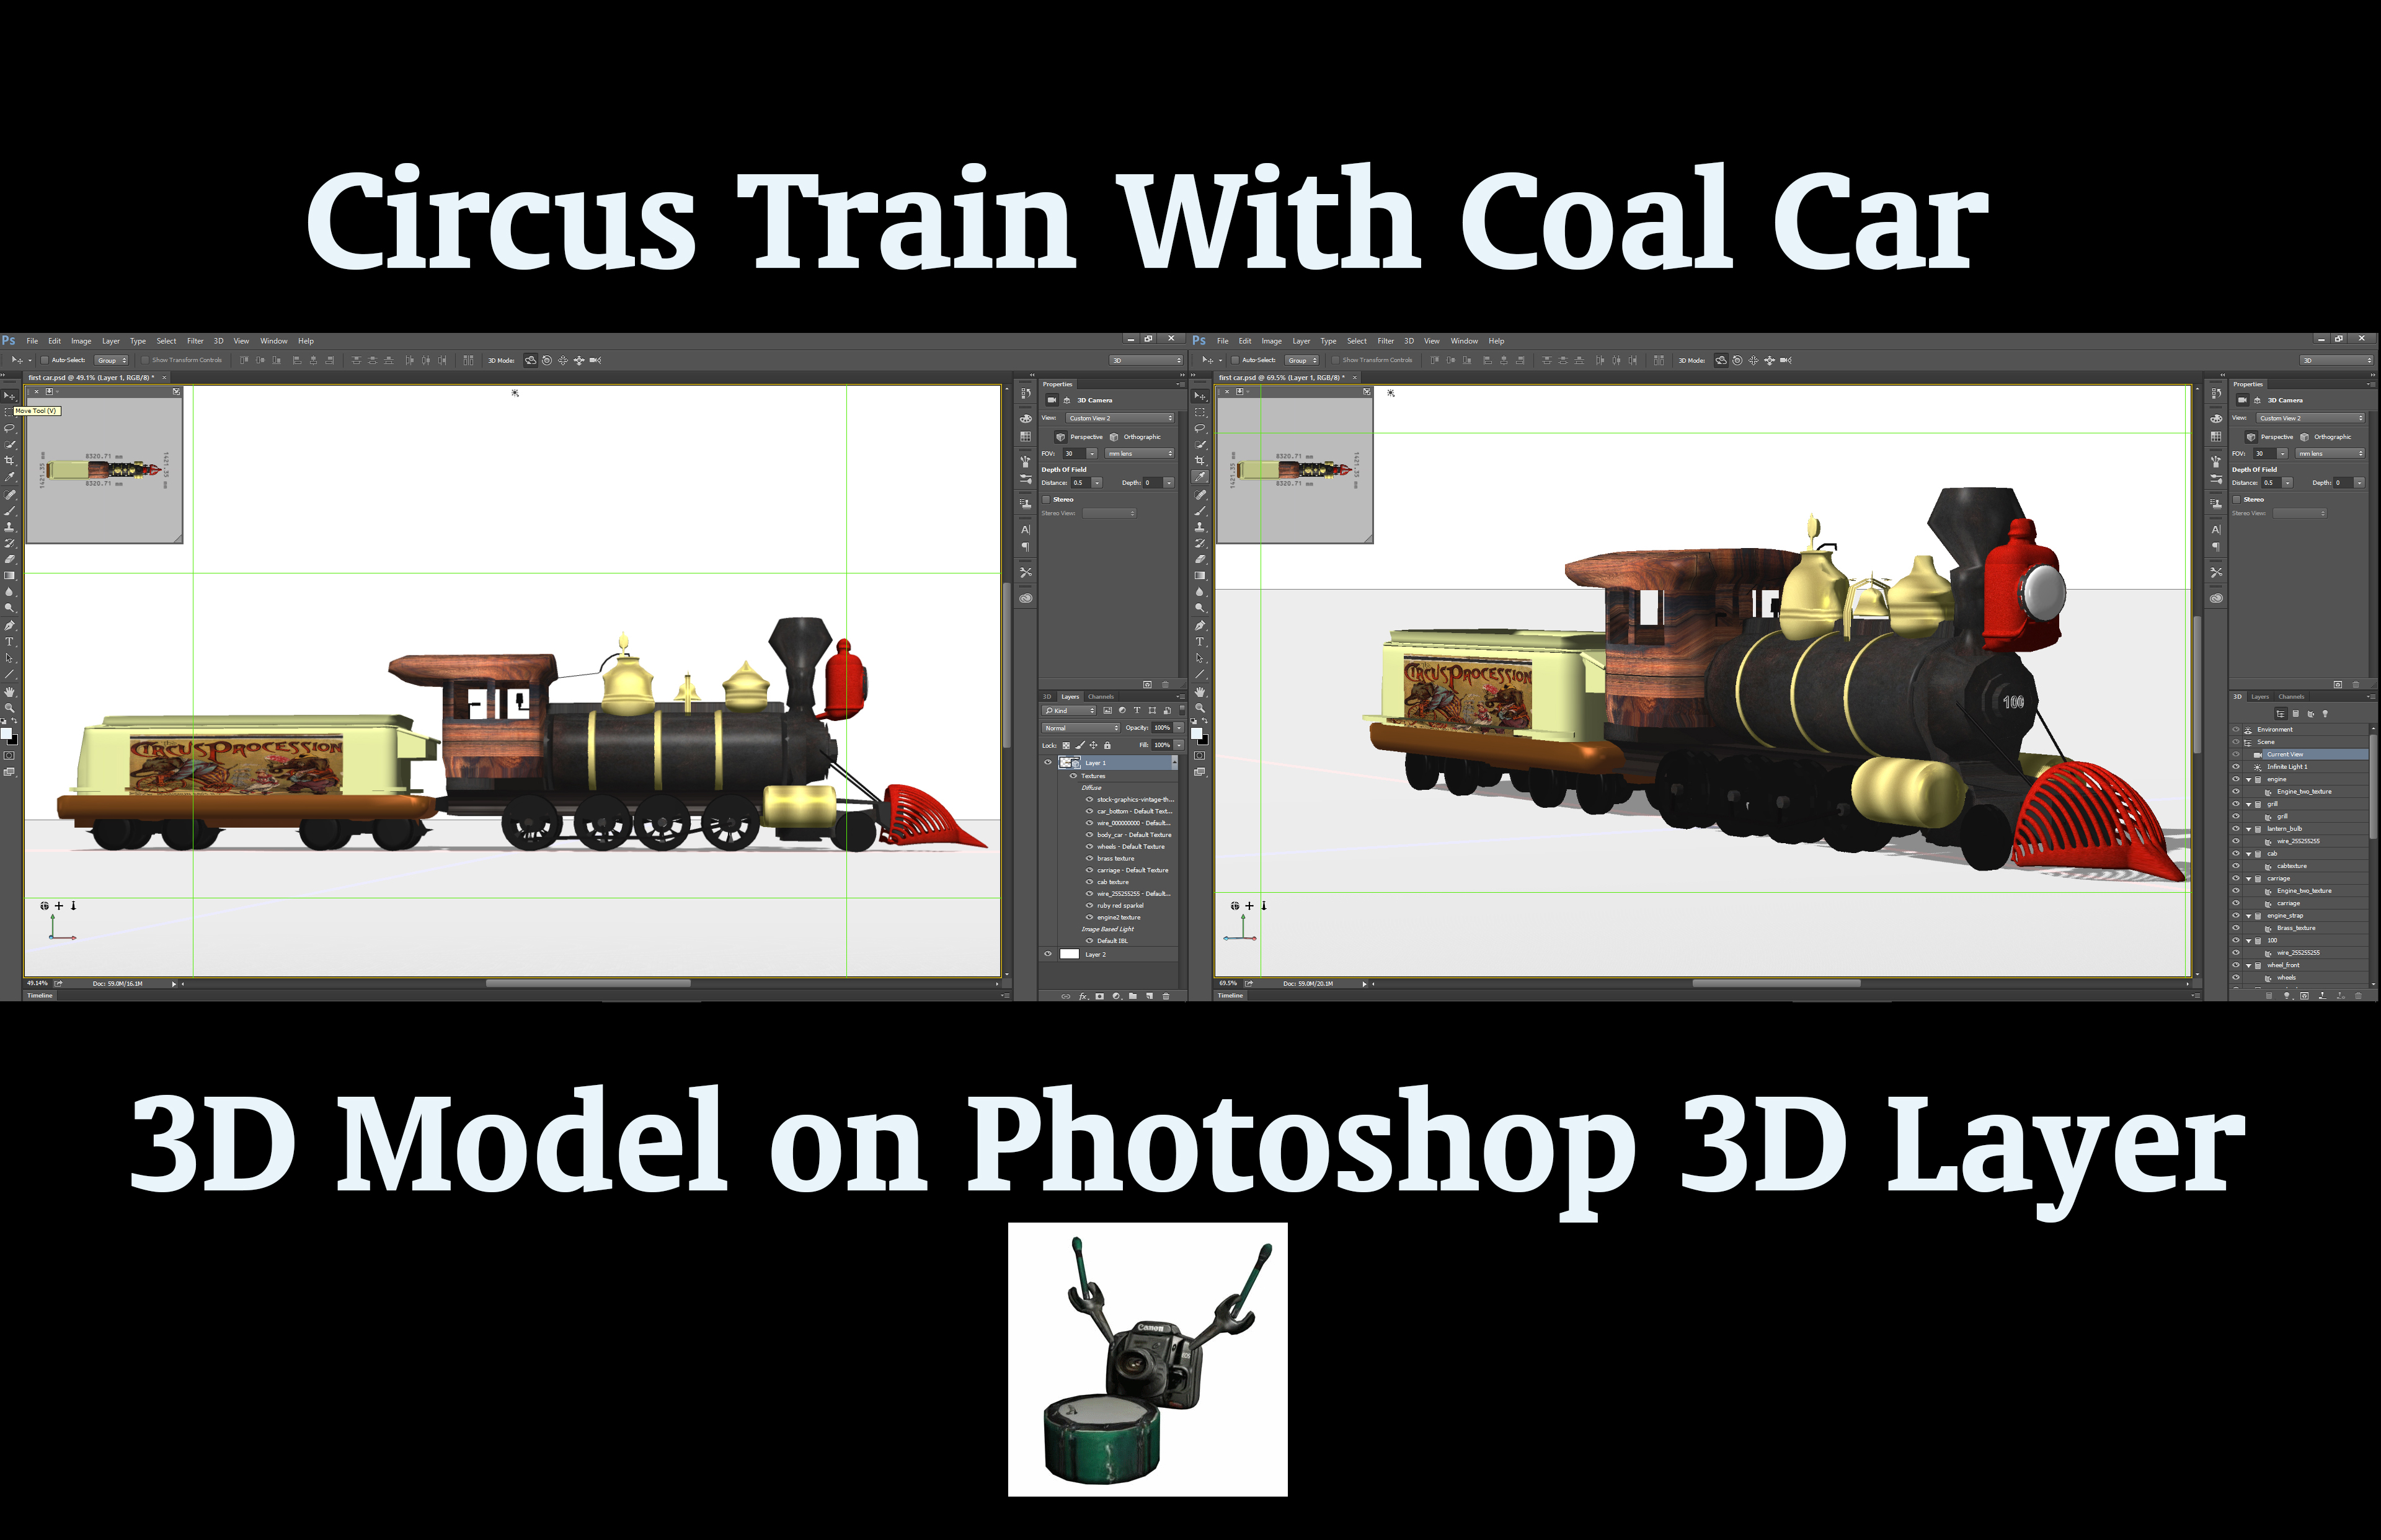 3D Circus Steam Locomotive with Coal Car by ArthurRamsey